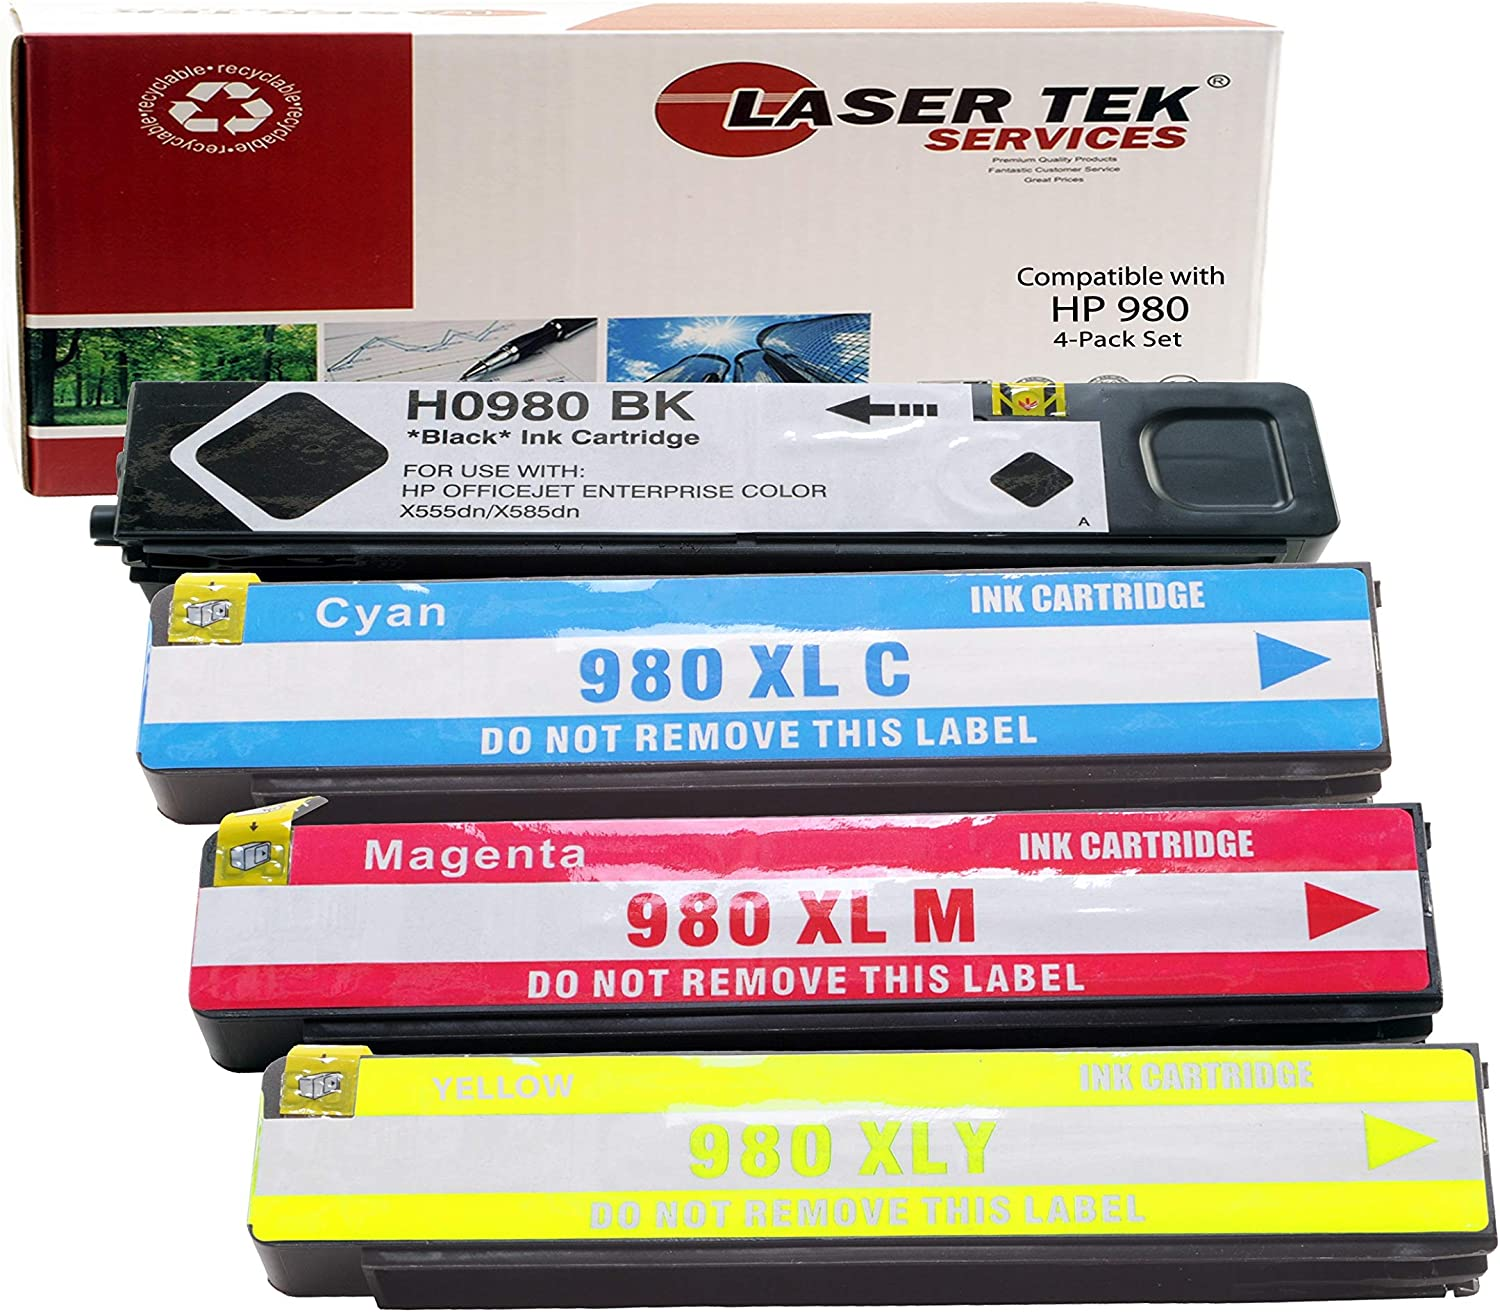 Black, 2-Pack Laser Tek Services Compatible Ink Cartridge Replacement for High Yield HP 980 D8J10A.